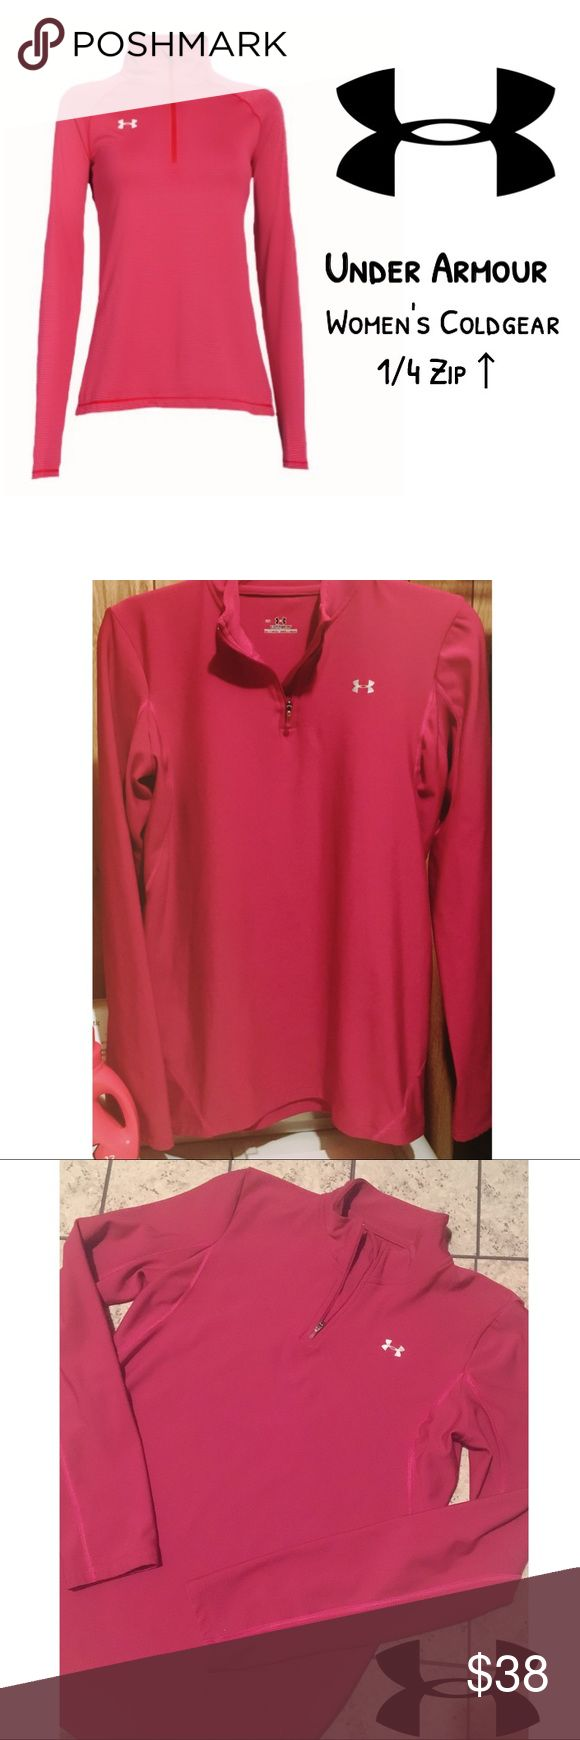 Under Armour Coldgear Long Sleeve 1/4 Zip Up NWOT! Women's UNDER ARMOUR Coldgear 1/4 Zip Up Long Sleeve Fitted Pull Over. Size Large. Color: Pink/Magenta. See Photo for Size Measurements. Under Armour Tops Tees - Long Sleeve